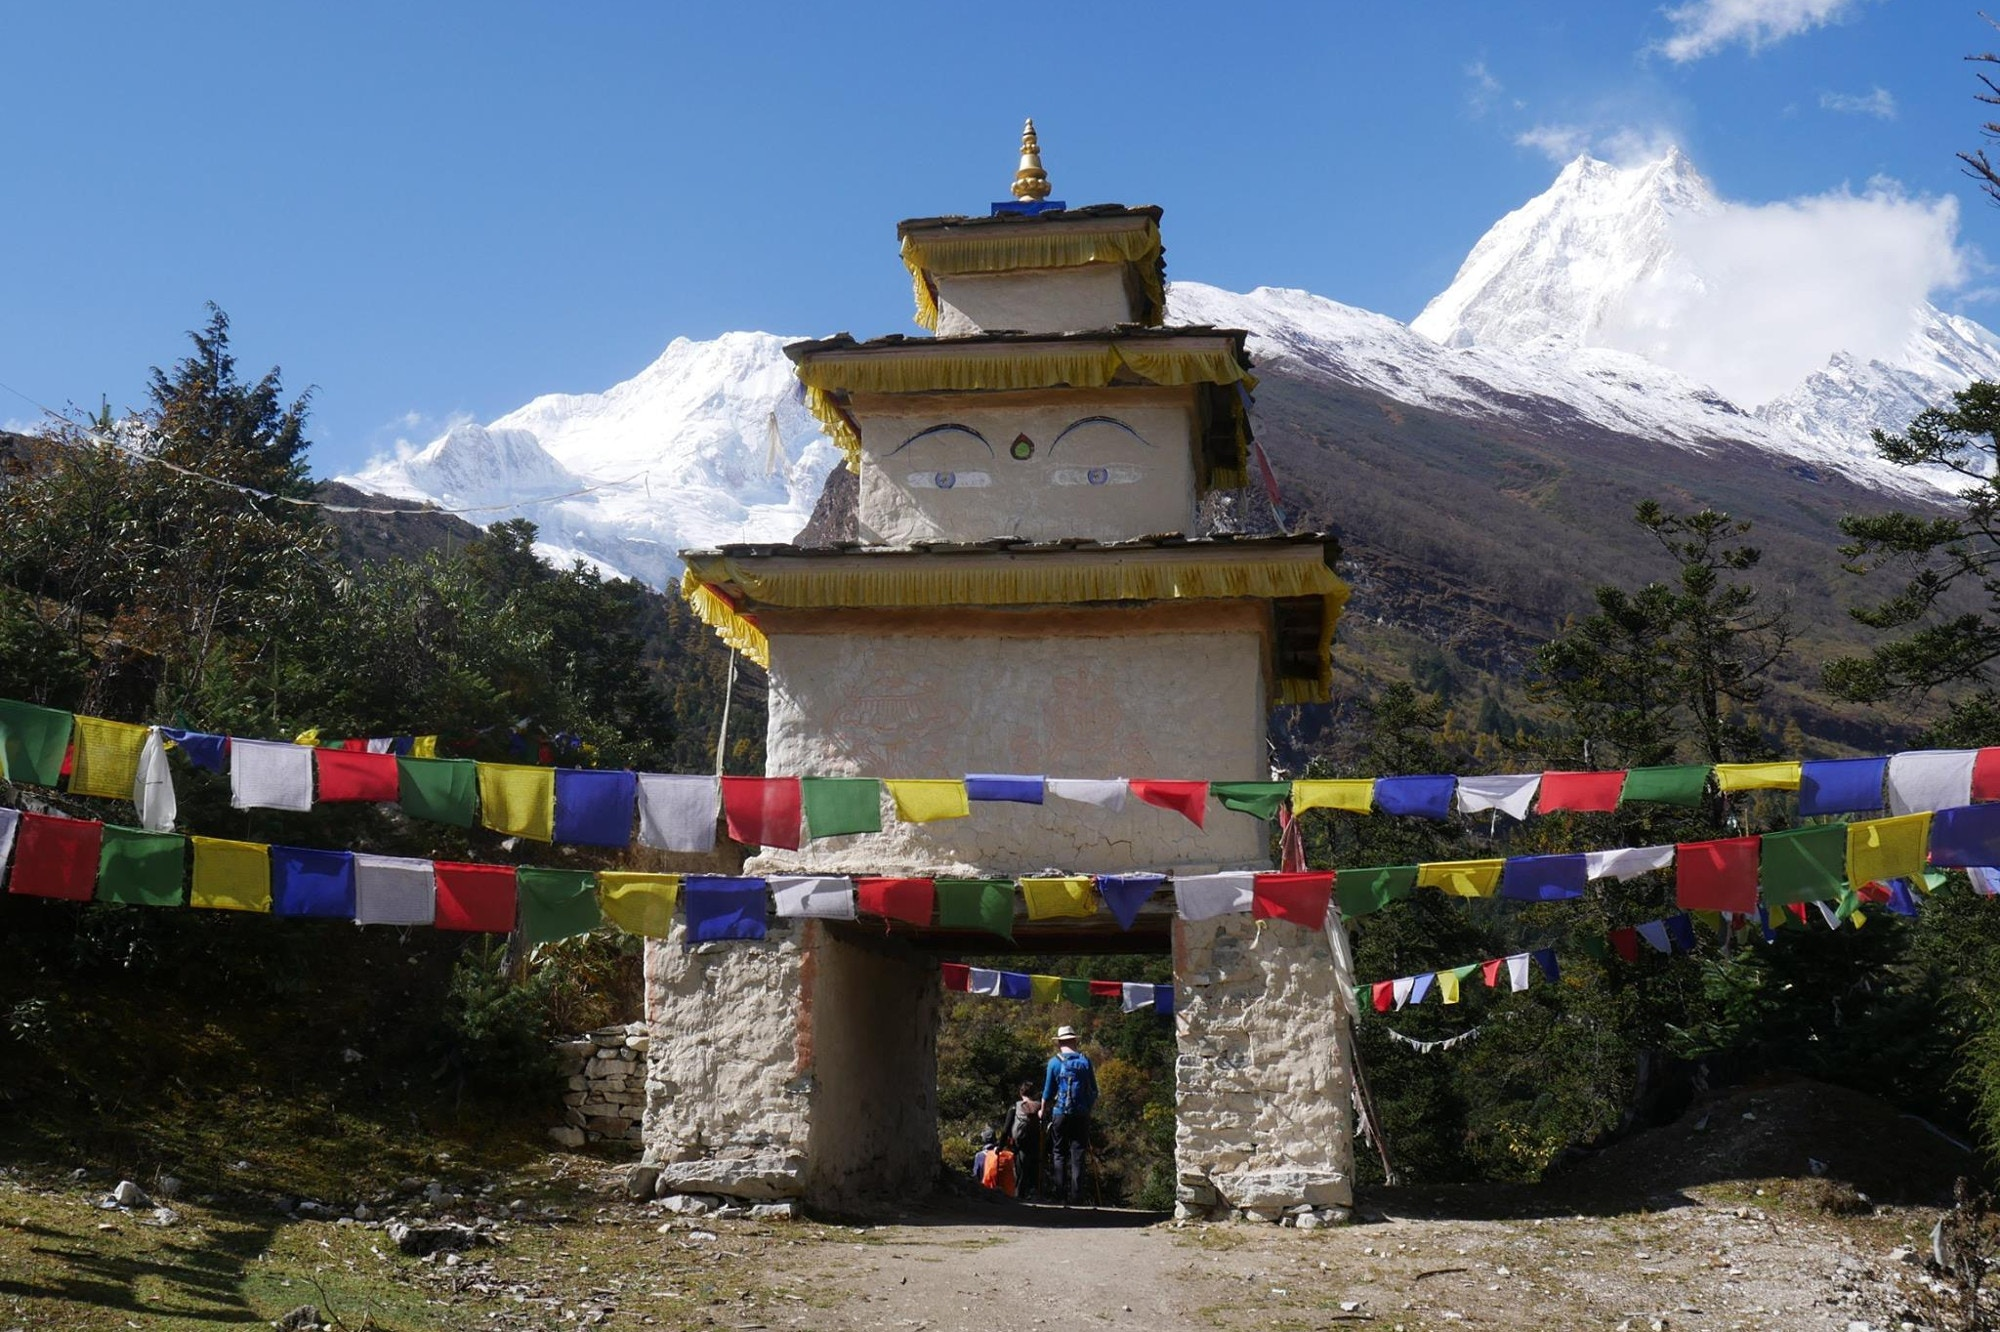 A stupa with Buddha eyes painted on and prayer flags in the foreground